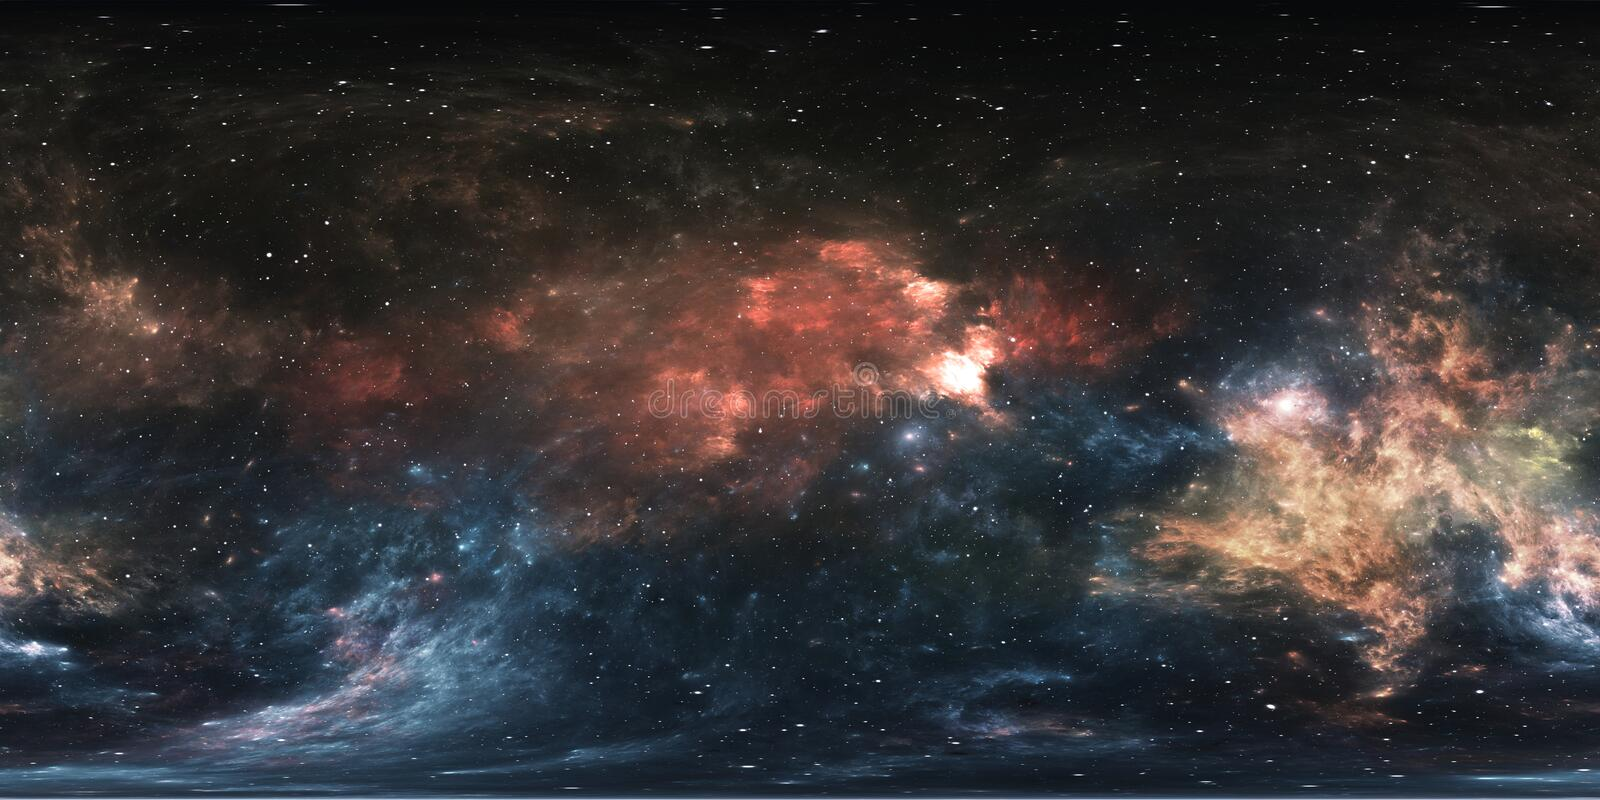 360 degree space nebula panorama, equirectangular projection, environment map. HDRI spherical panorama. Space background. With nebula and stars. 3d illustration vector illustration